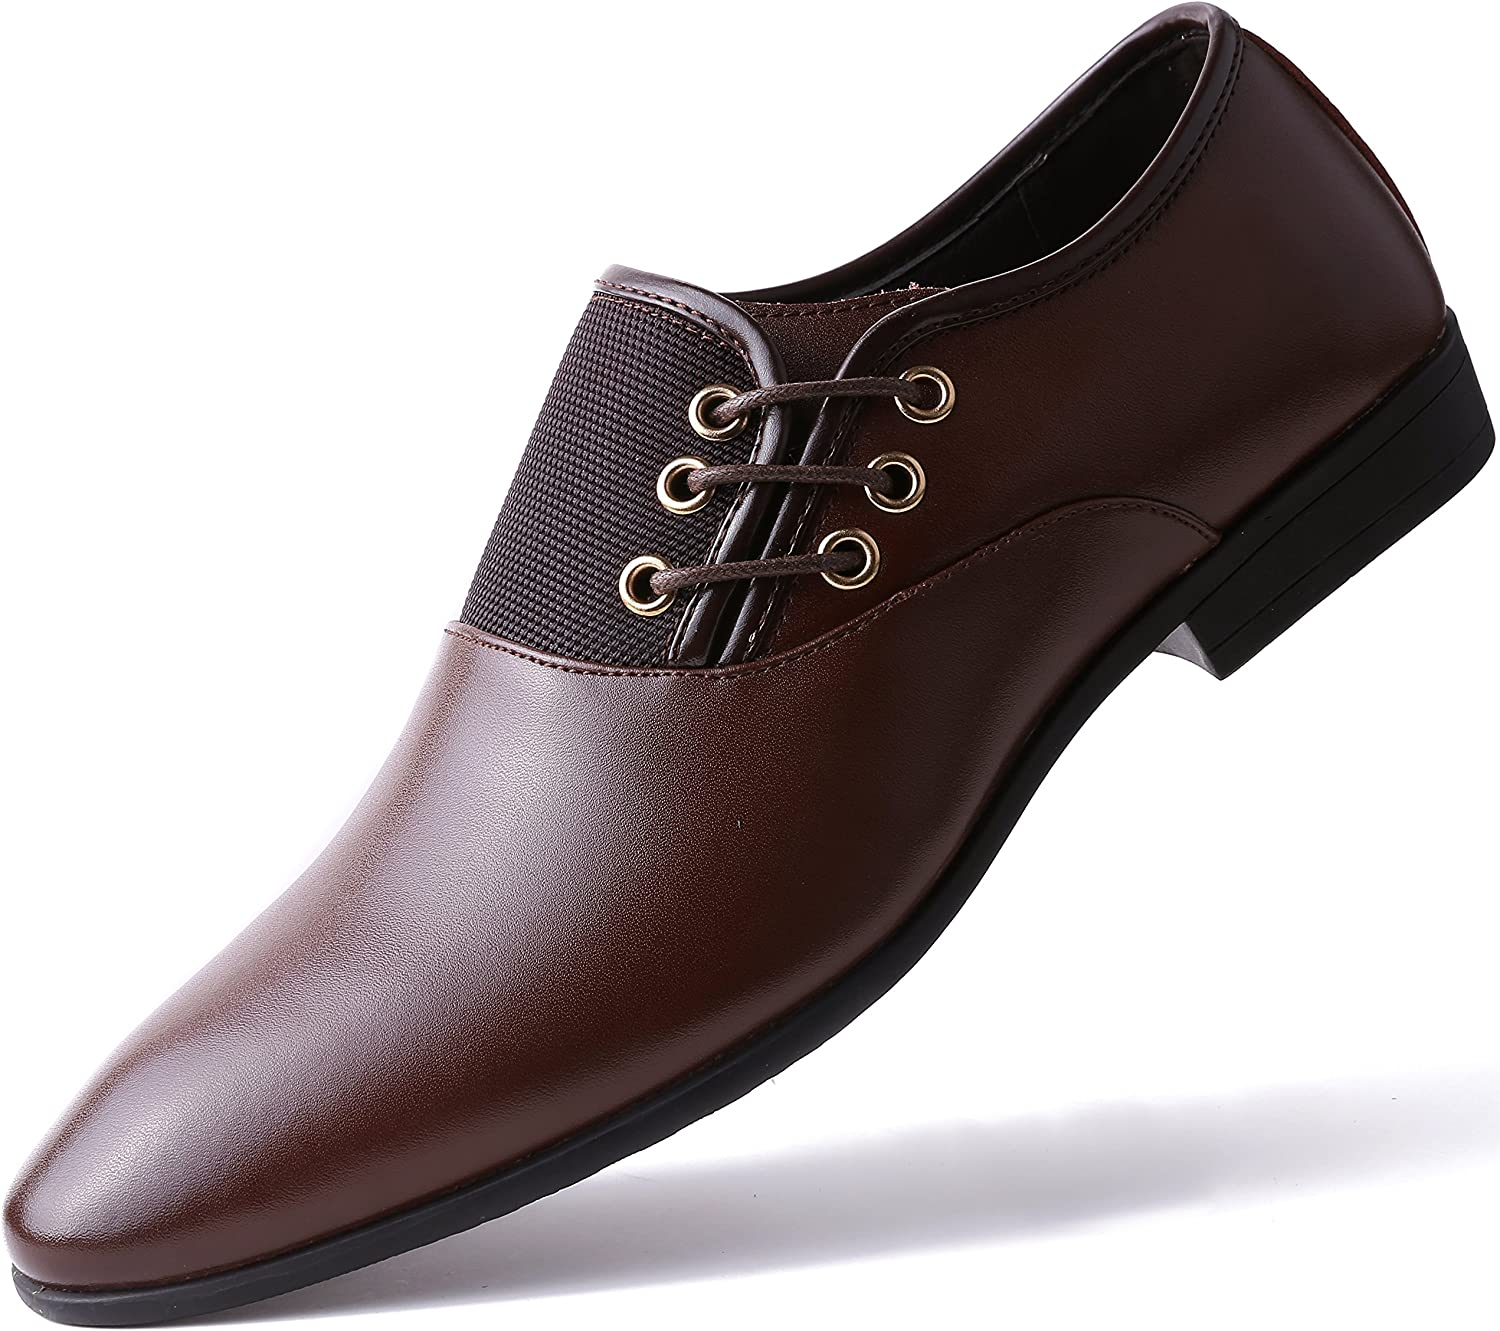 Marino Oxford Dress shoes for Men - Formal Leather shoes - Casual Classic Mens shoes